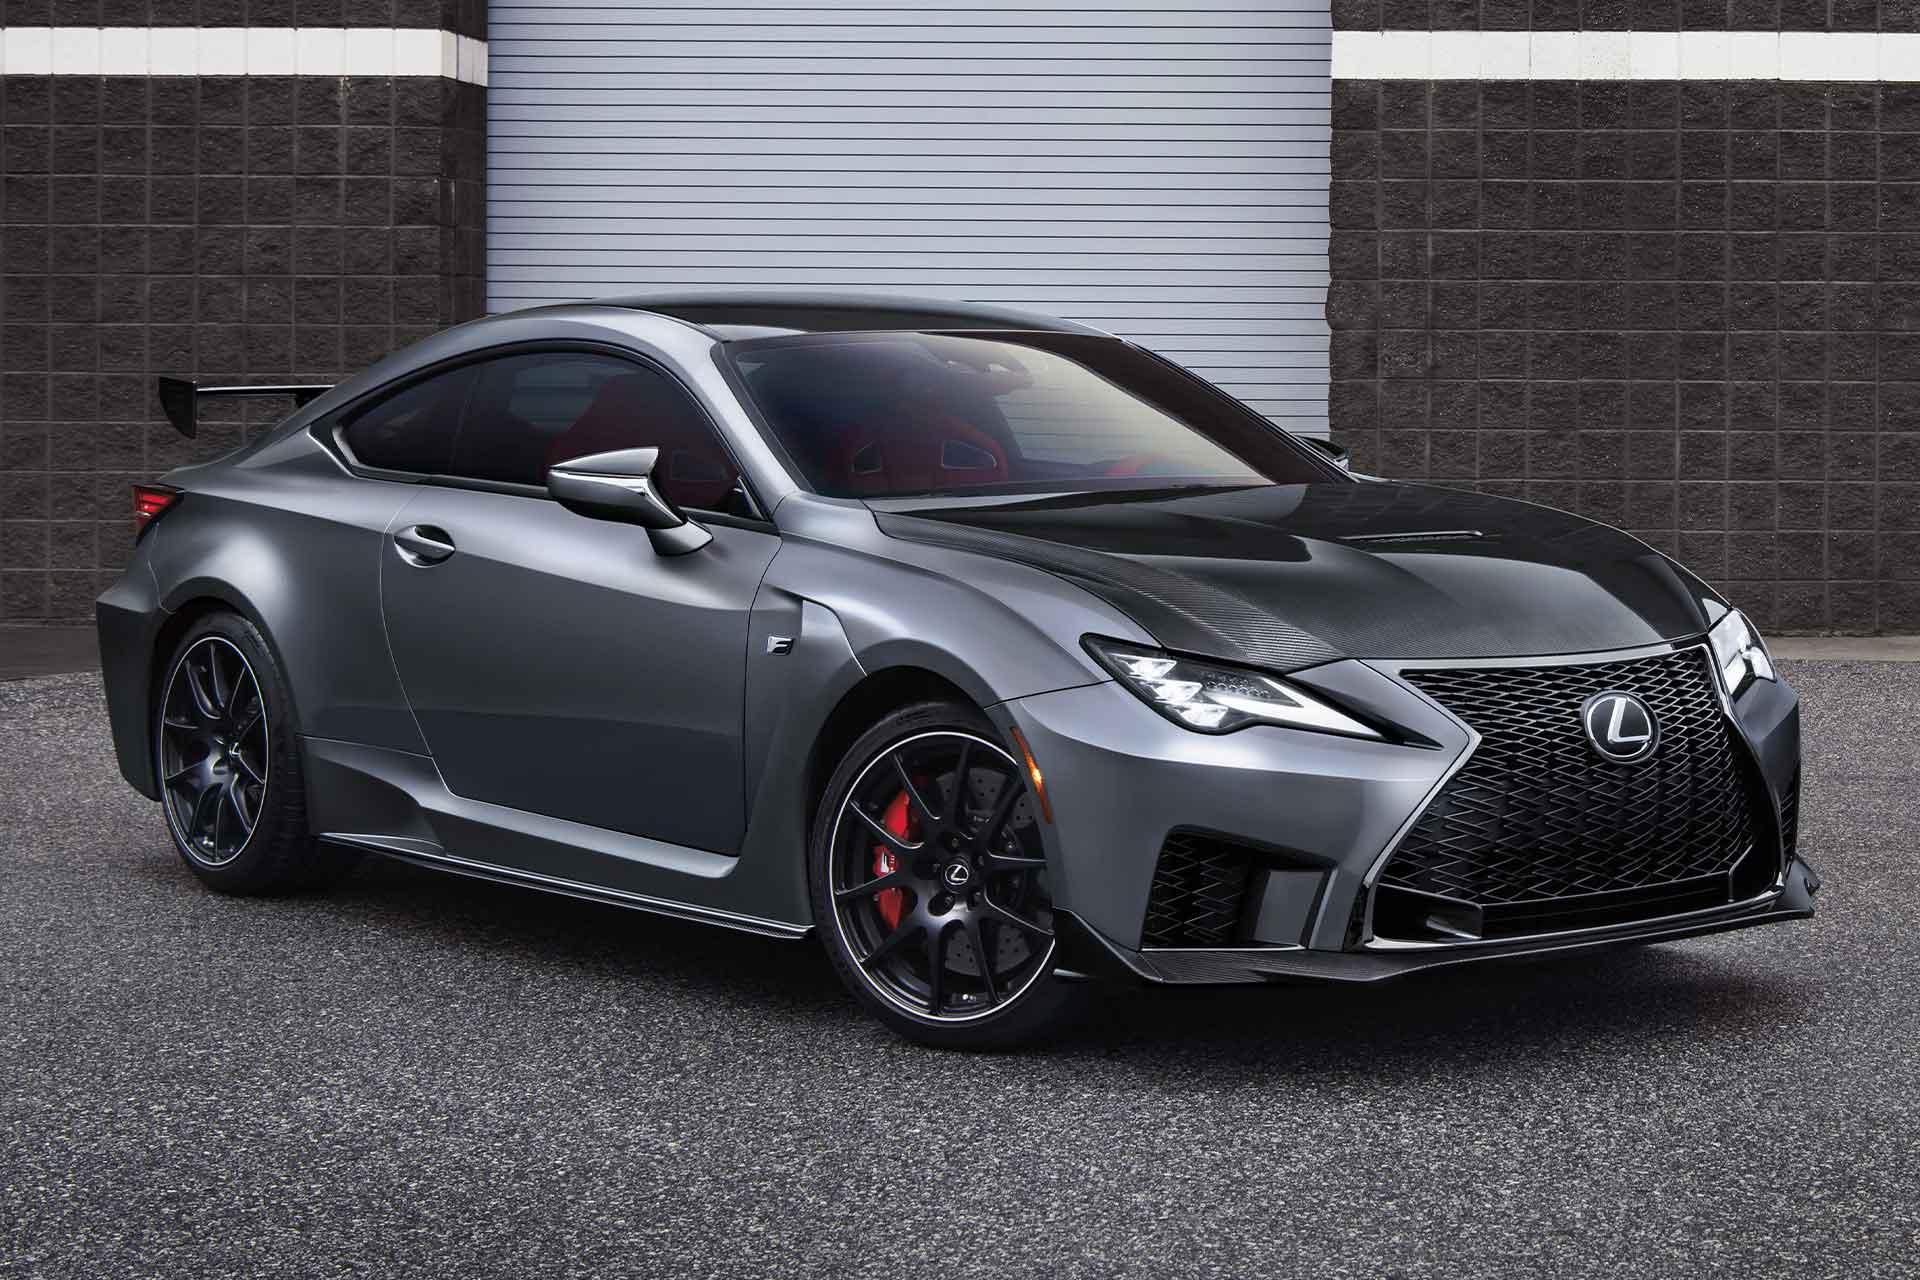 Lexus RC F Fuji Speedway Edition Coupe